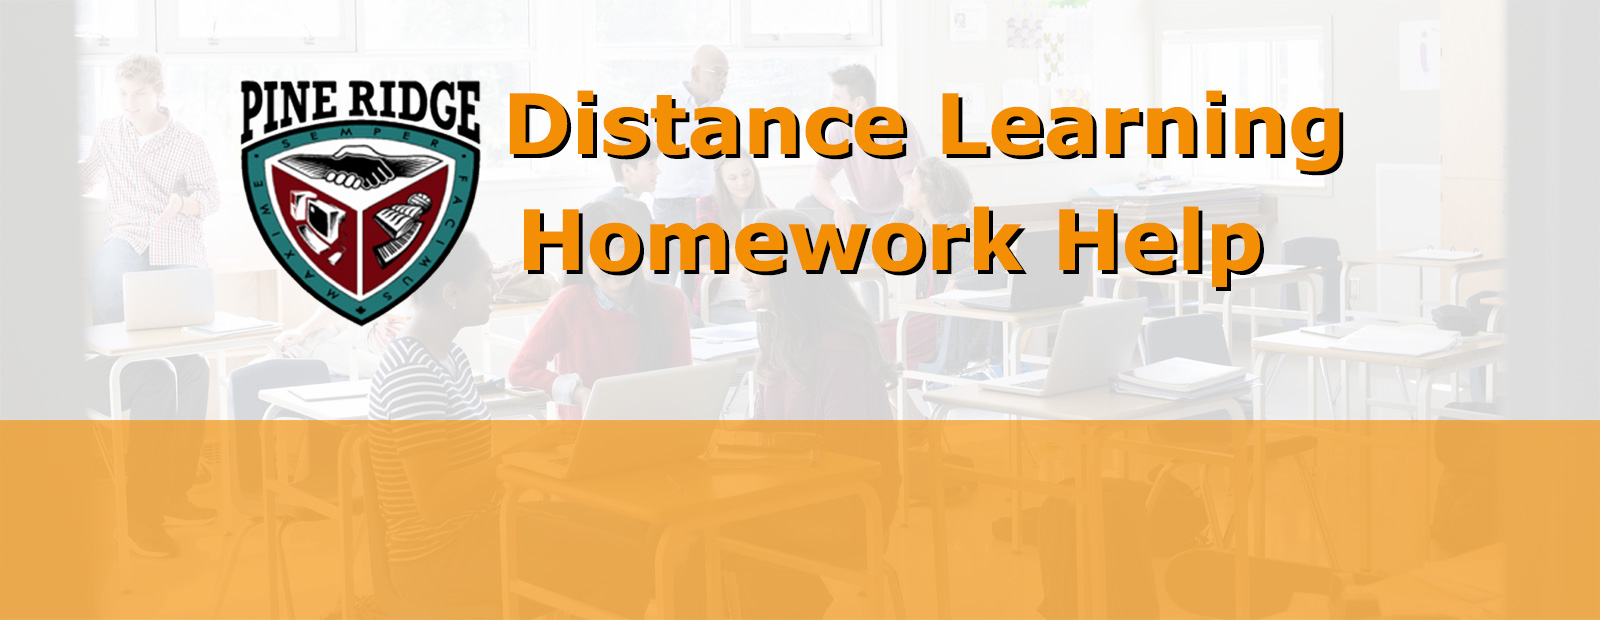 Distance Learning Homework Help